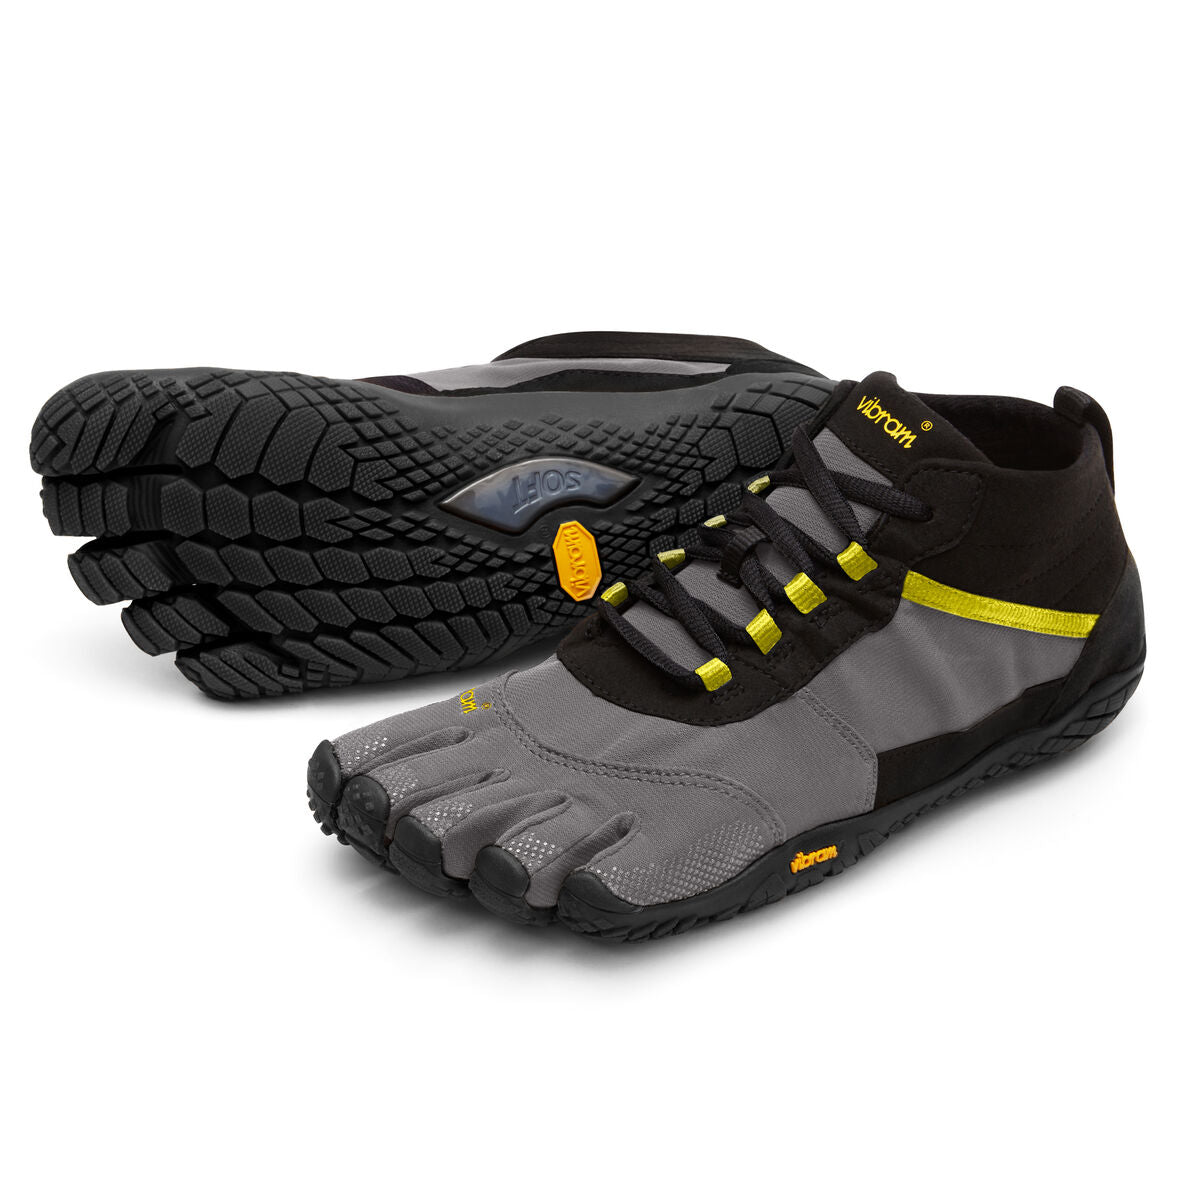 Women's Vibram Five Fingers V-Trek Hiking Shoe in Black/Grey/Citronelle from the front